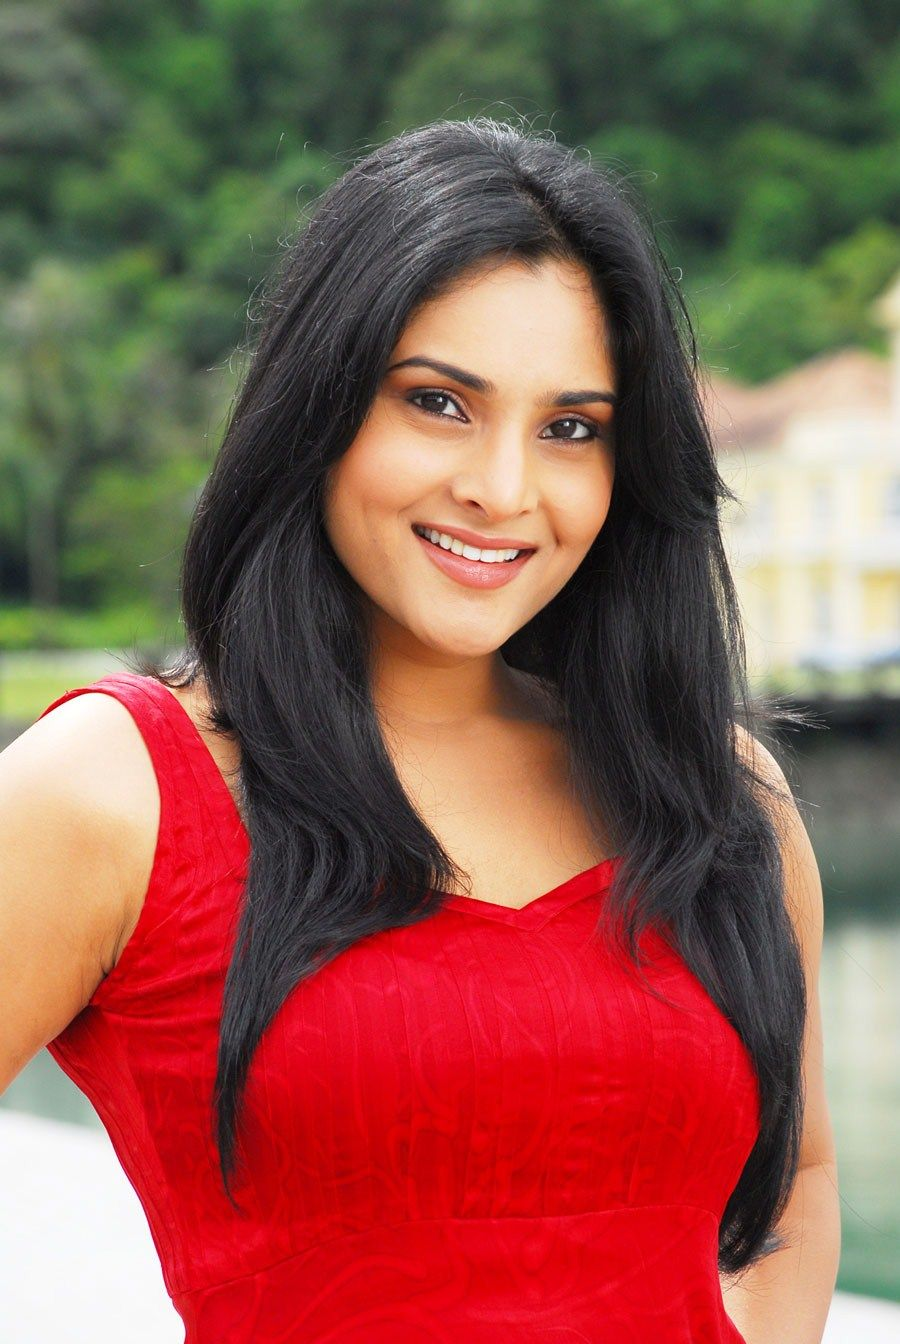 kannada actress hd wallpaper hot hd wallpapers - movie mobile